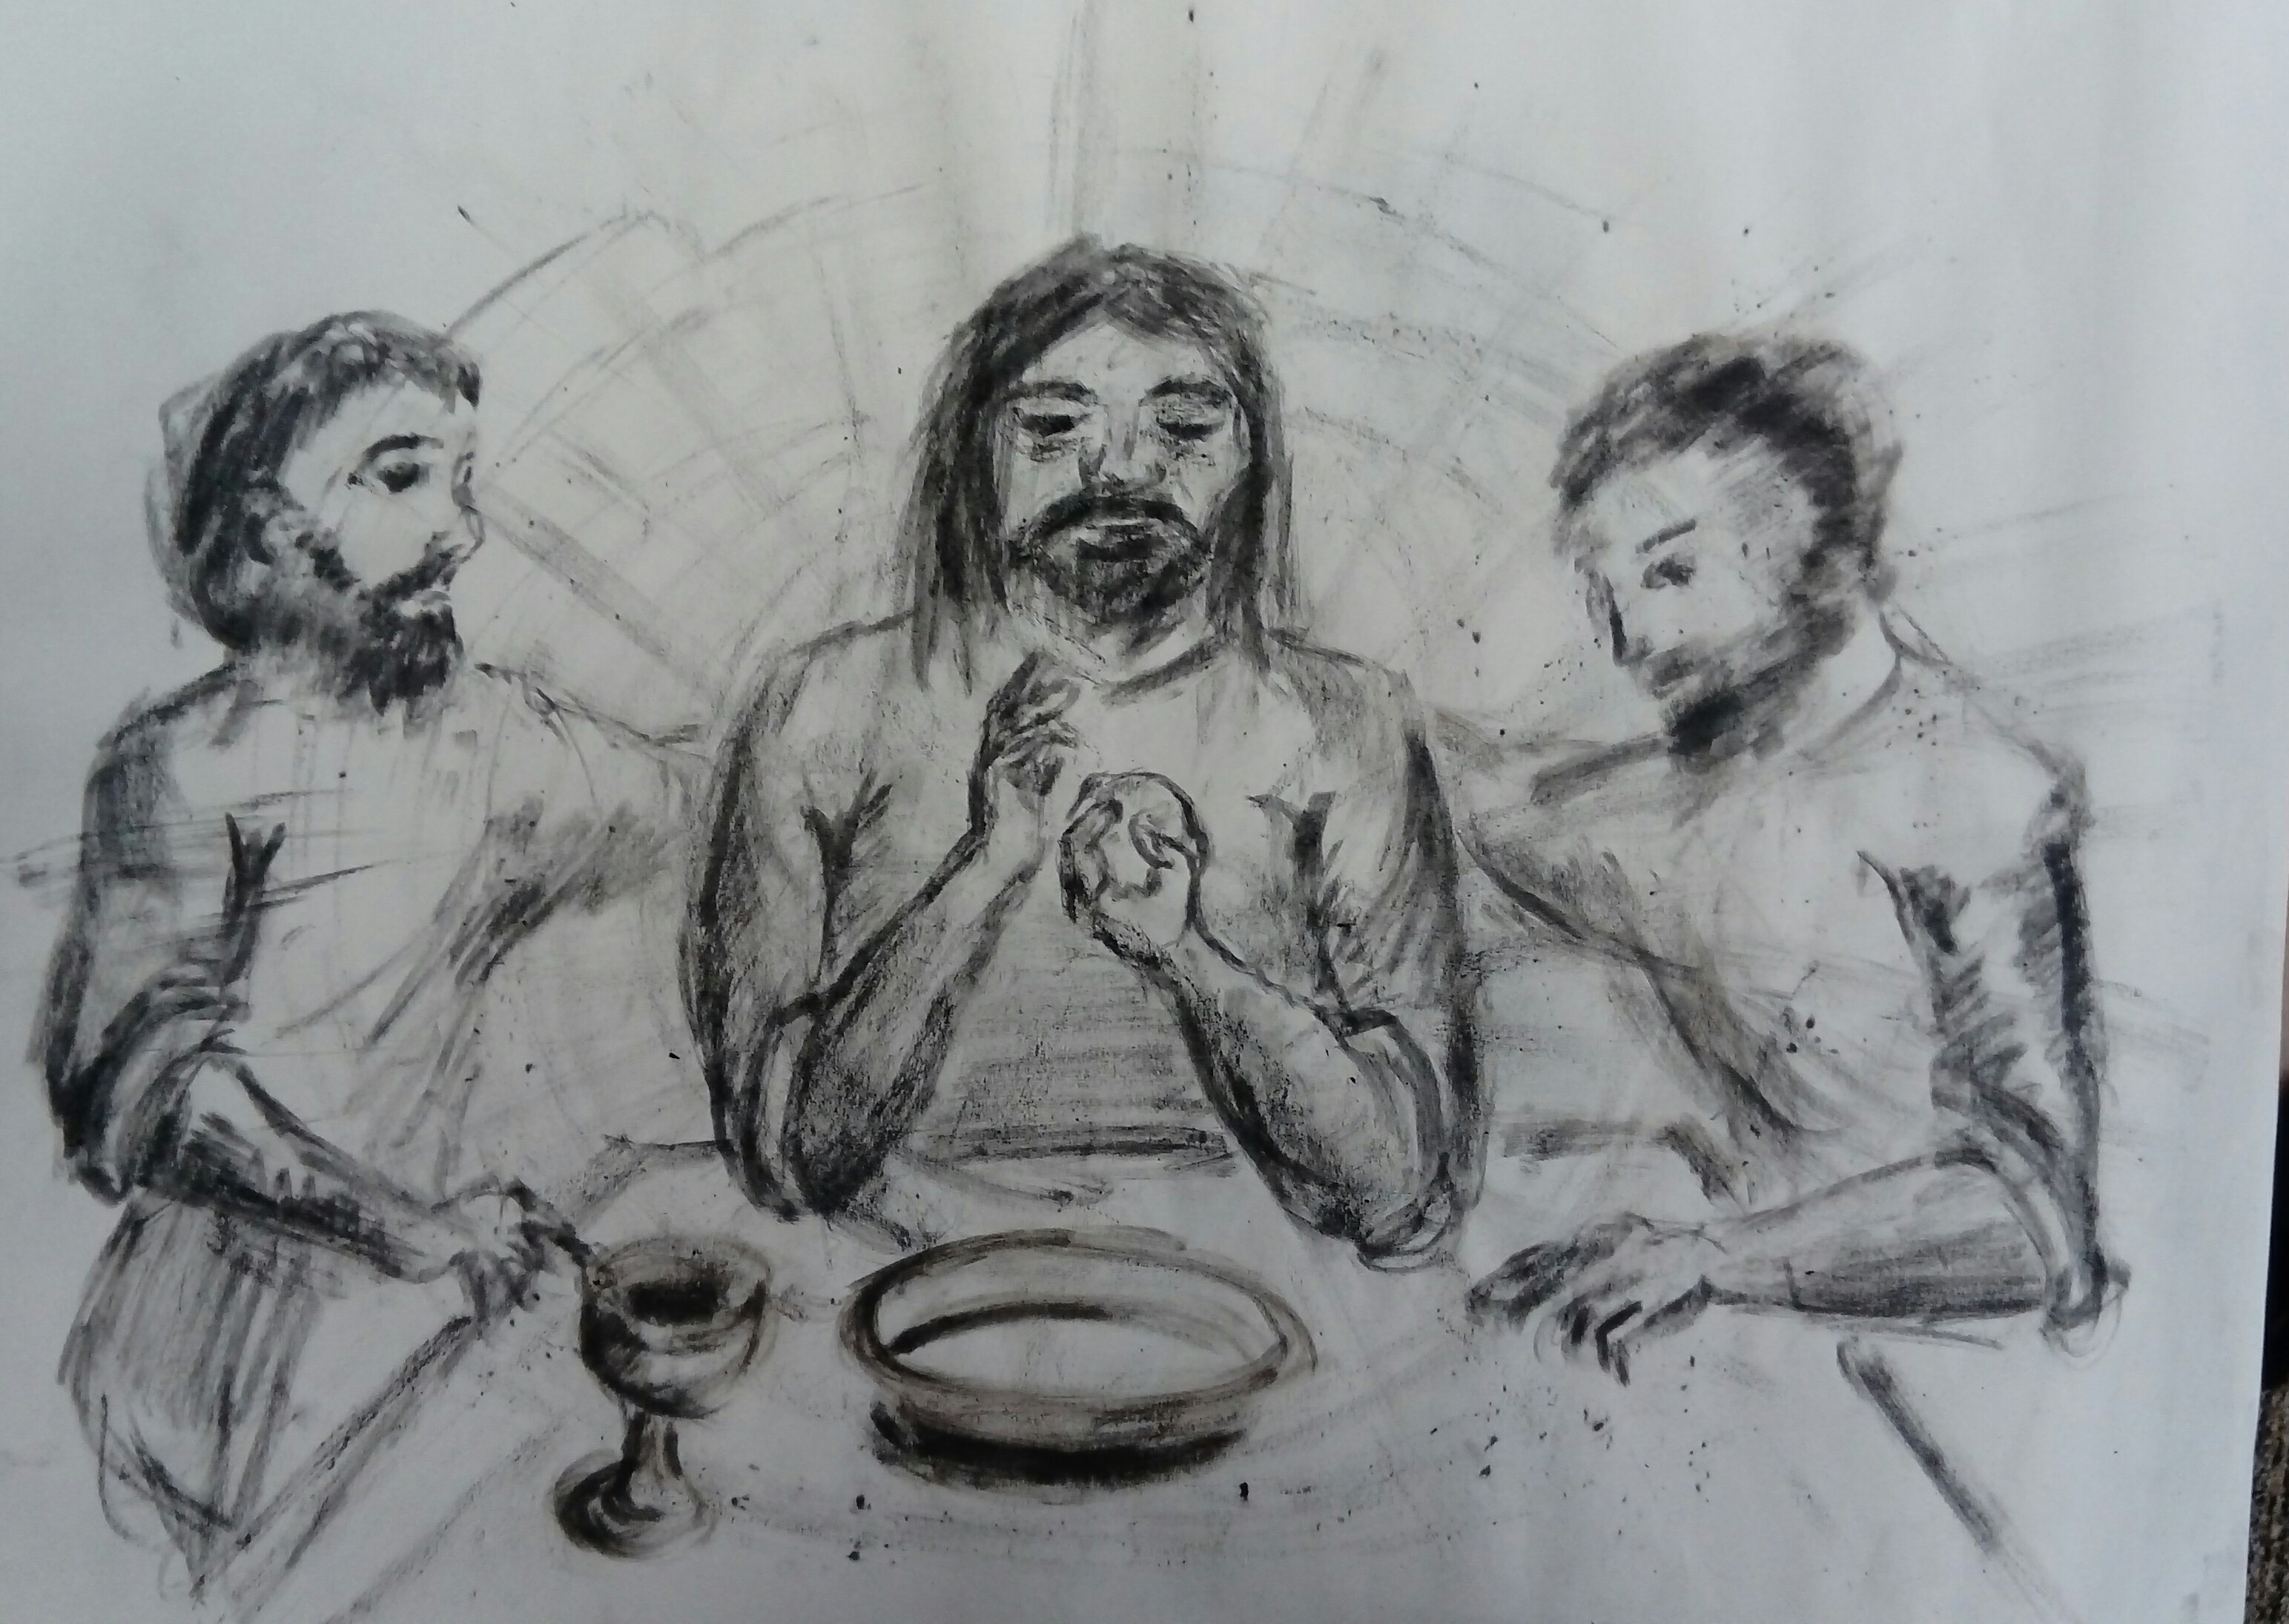 Jesus at the supper at Emmaus - drawn in charcoal